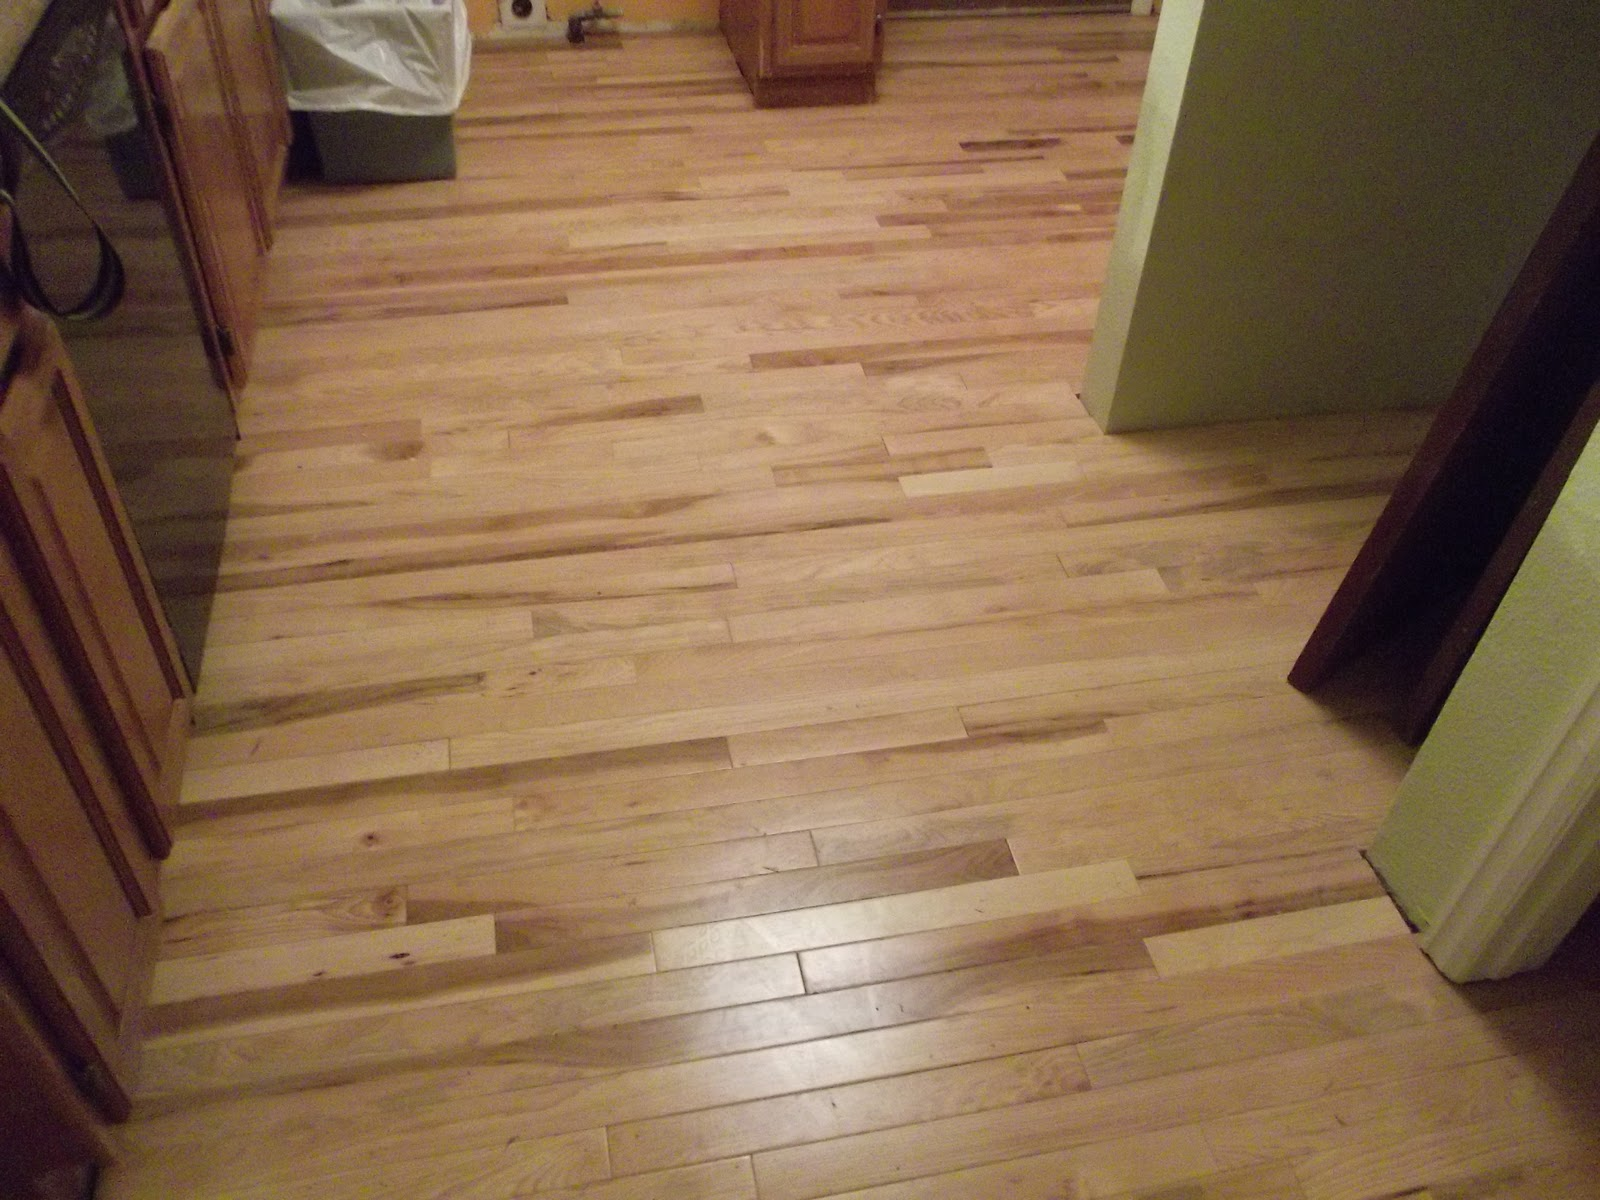 Hickory hardwood flooring sale 2 1 4 prefinished for Real wood flooring sale